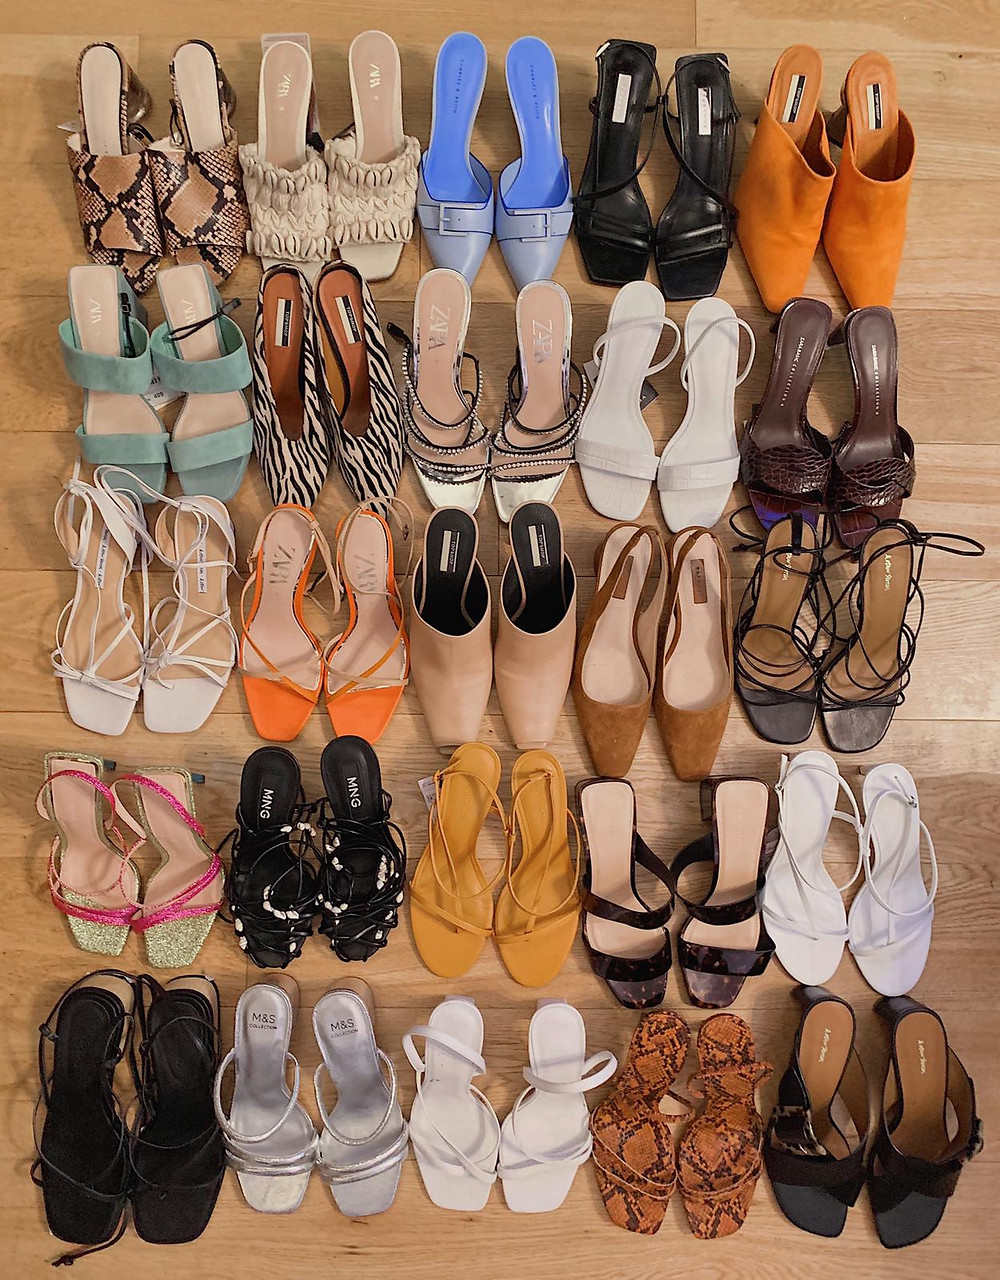 Spring Summer 2019 shoe trends, barely there sandals, floss sandals, natural sandals, mules, seashells, snakeskin, animal print, slingback heels, white shoes